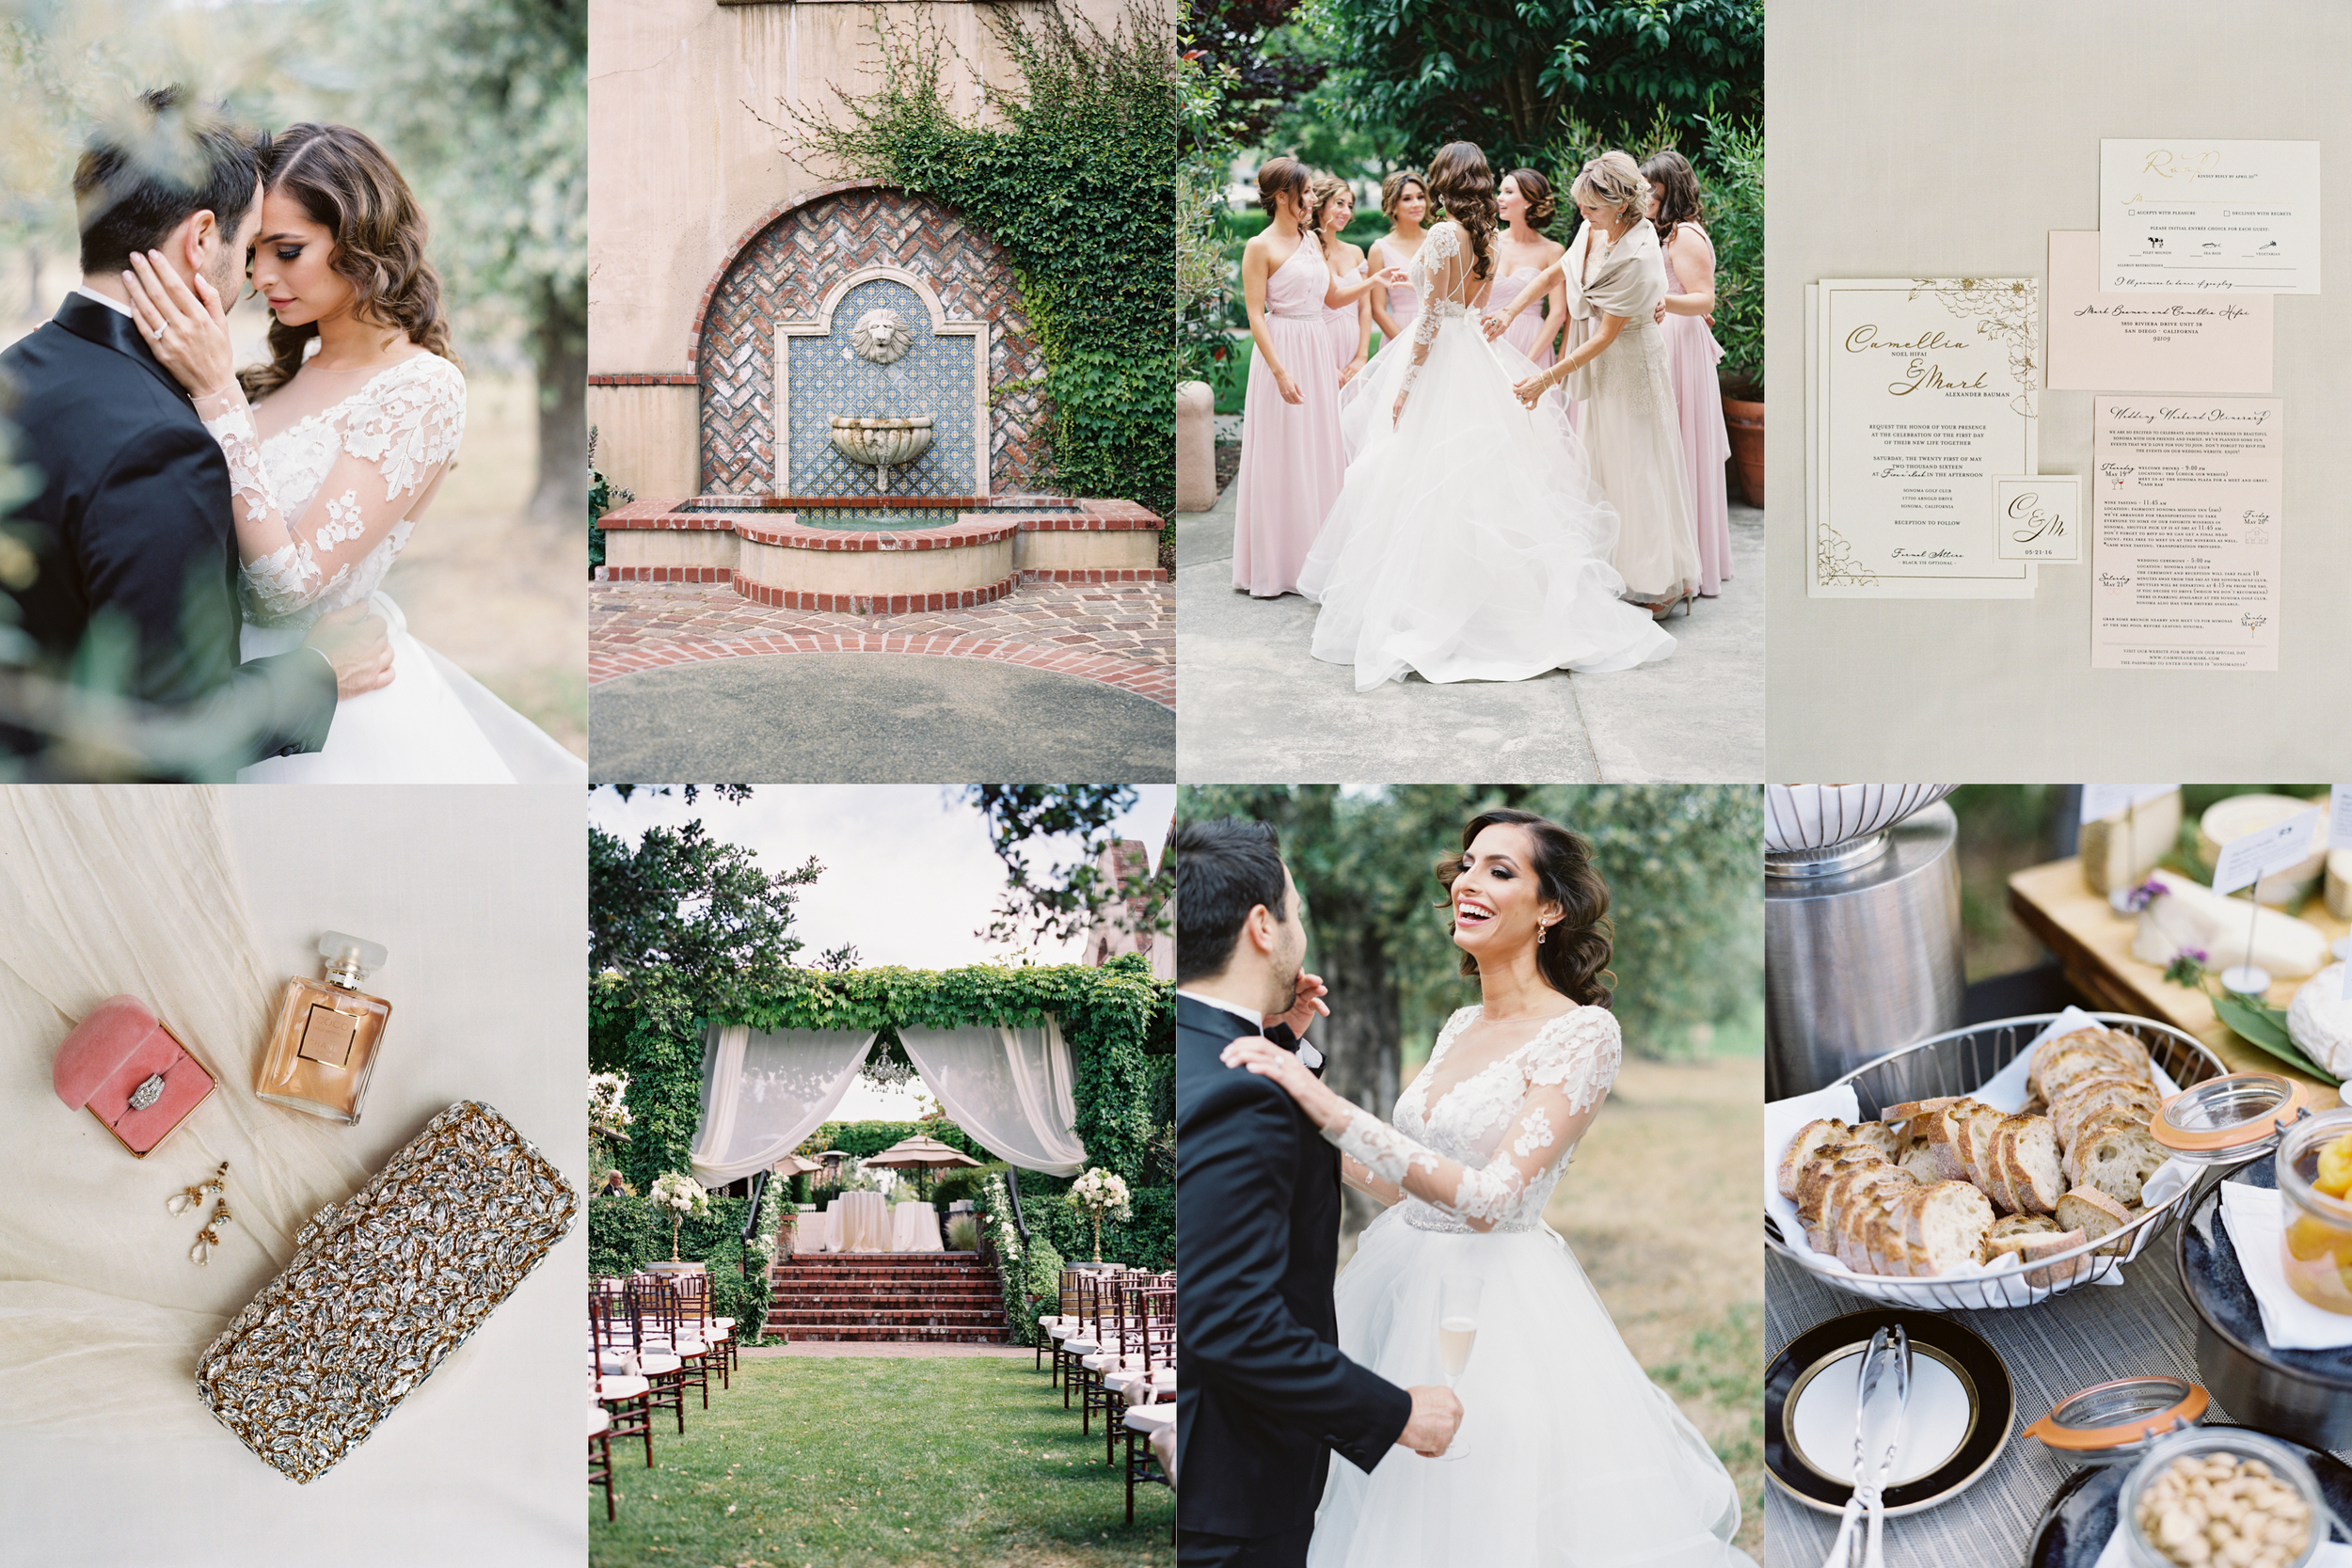 Cammie + Mark - Preview2.jpg